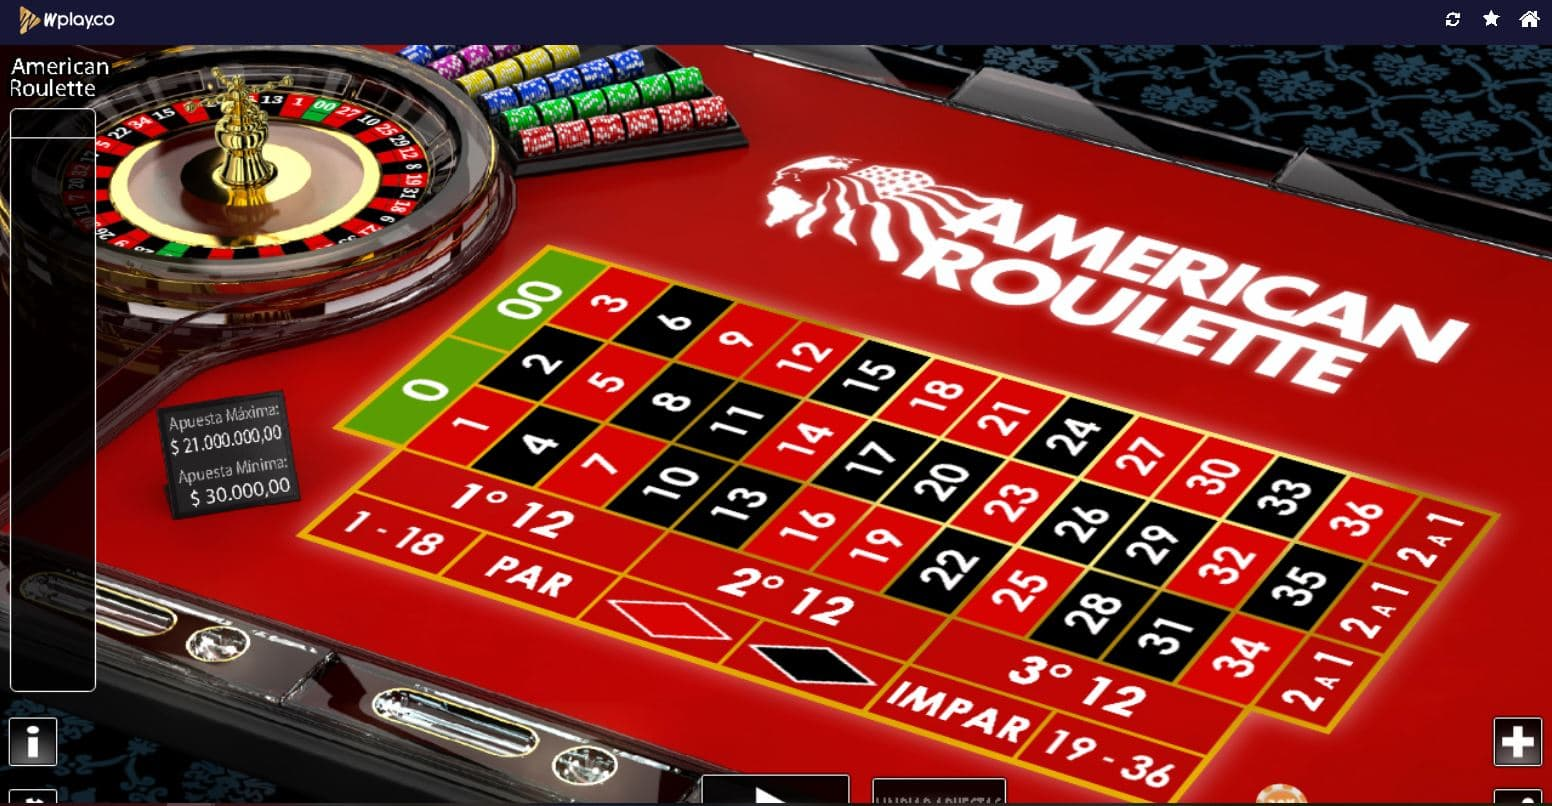 Wplay ruleta ofertas